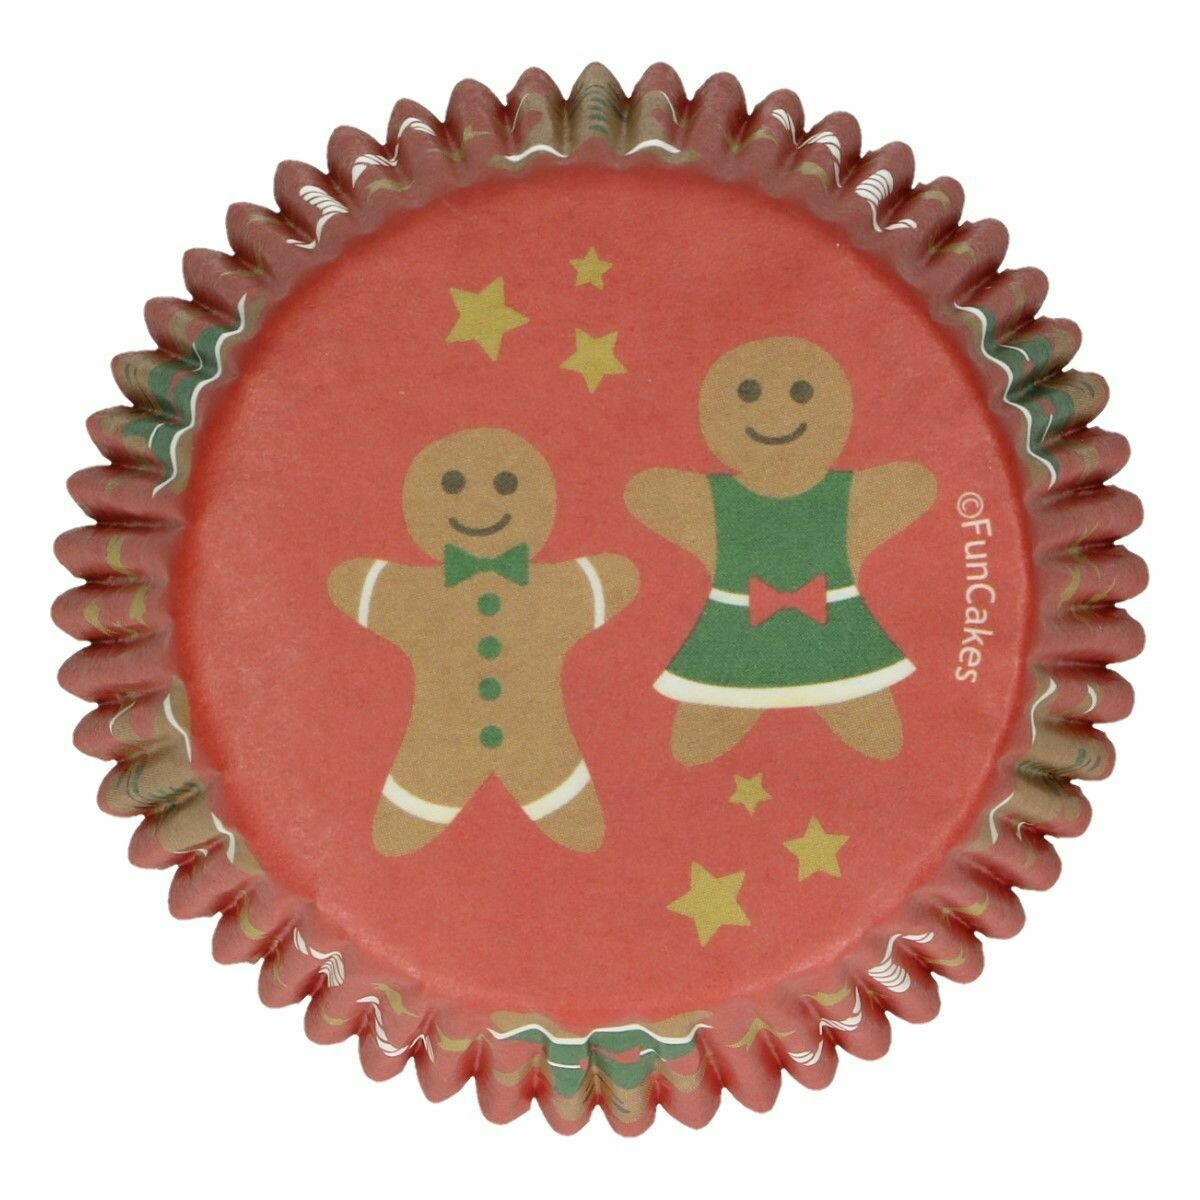 FunCakes Cupcake Cases -CHRISTMAS -GINGERBREAD PEOPLE -Θήκες Ψησίματος 48 τεμ